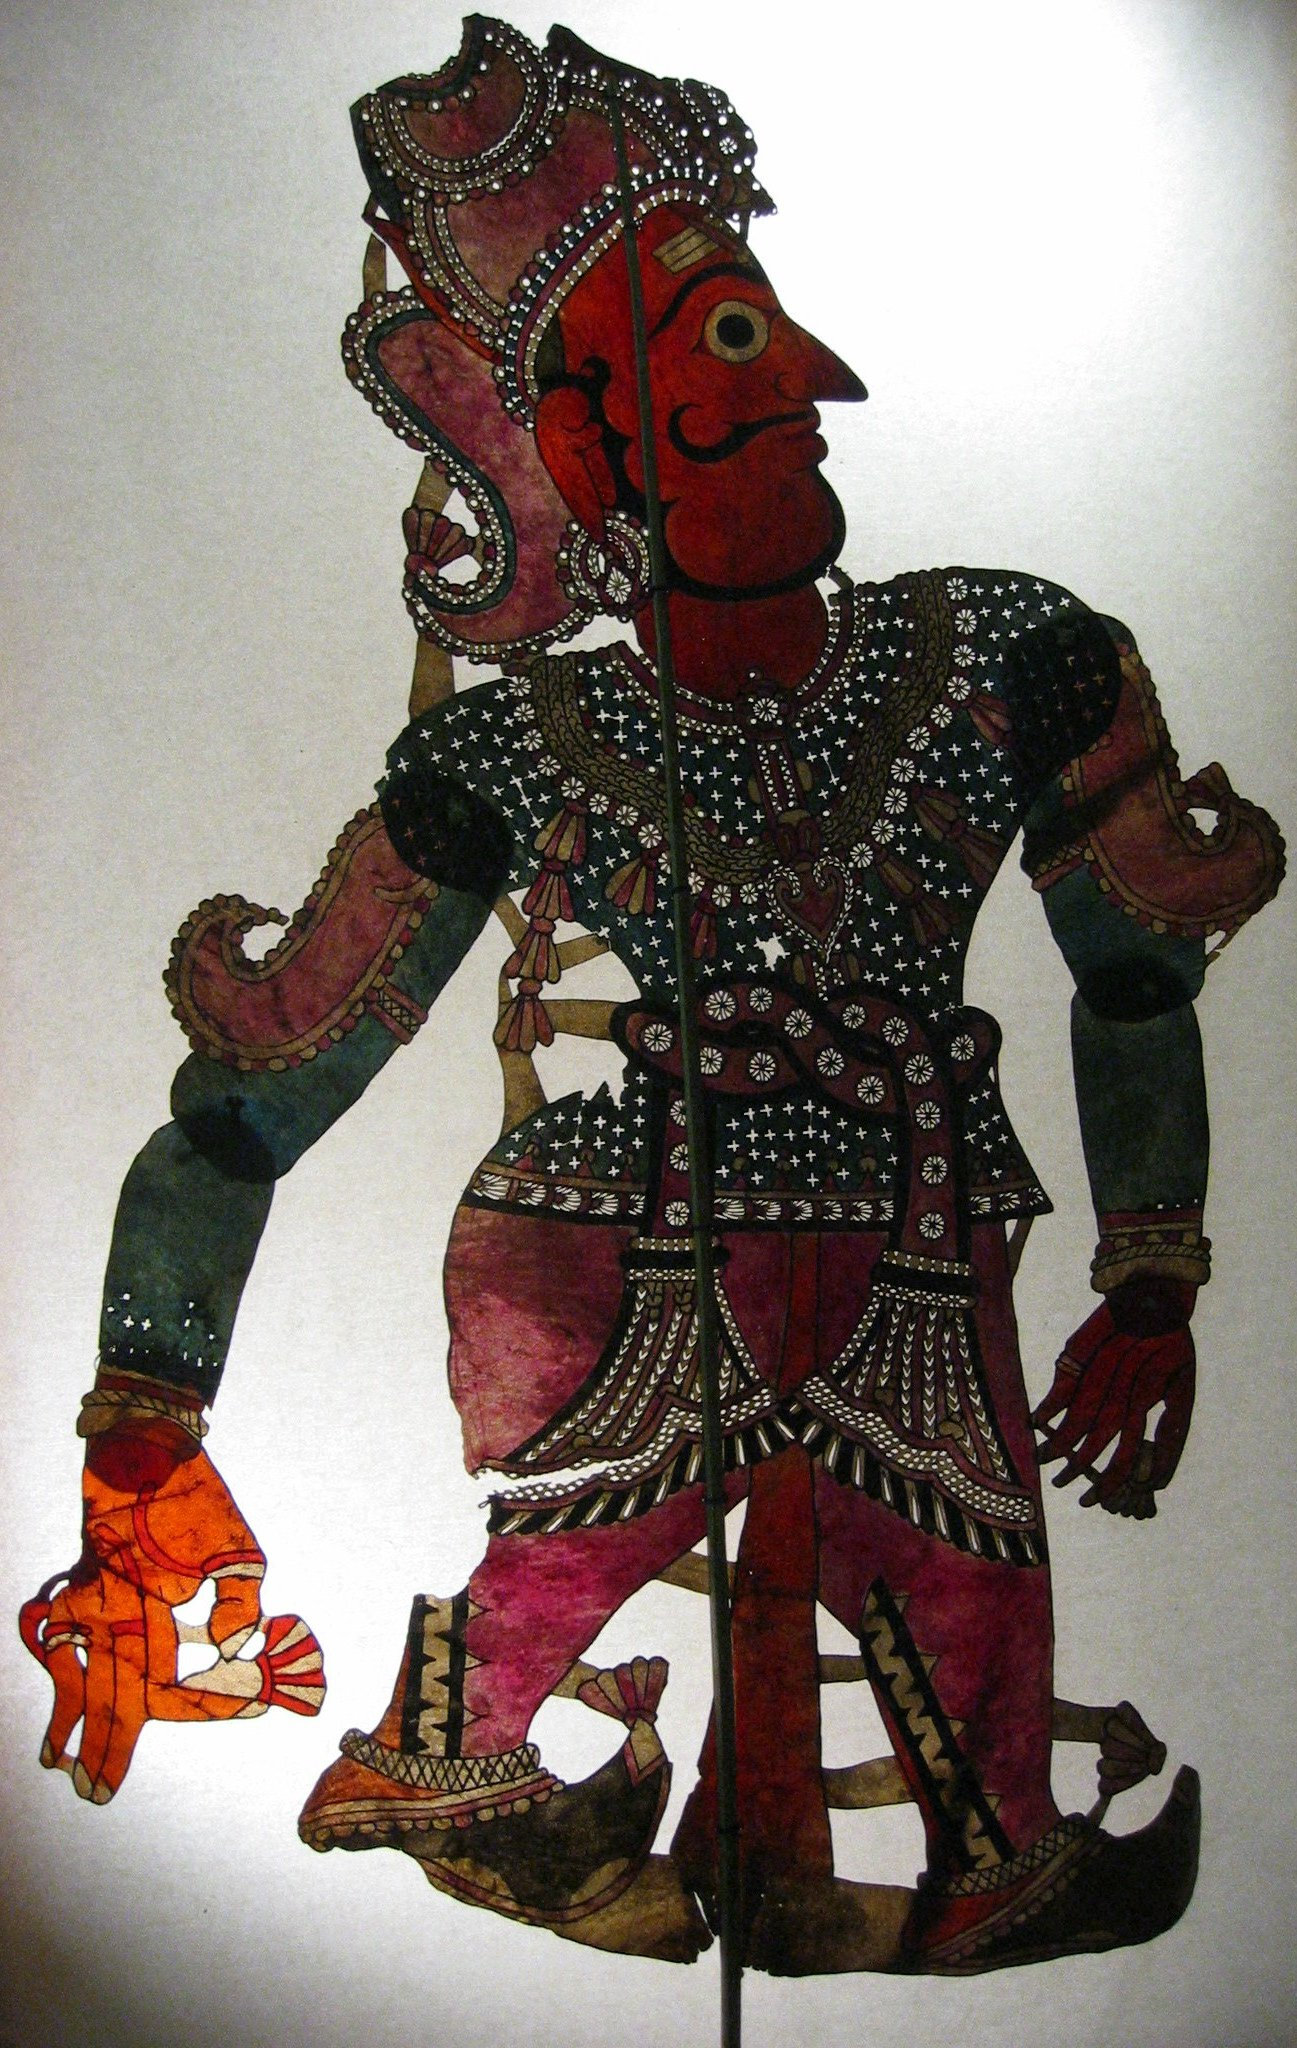 Râma, le personnage principal du Râmâyana, une figure d'ombre d'Andhra Pradesh, en Inde, tolu bommalata, hauteur : 1,10 m. Collection : Center for Puppetry Arts (Atlanta, Géorgie, États-Unis)